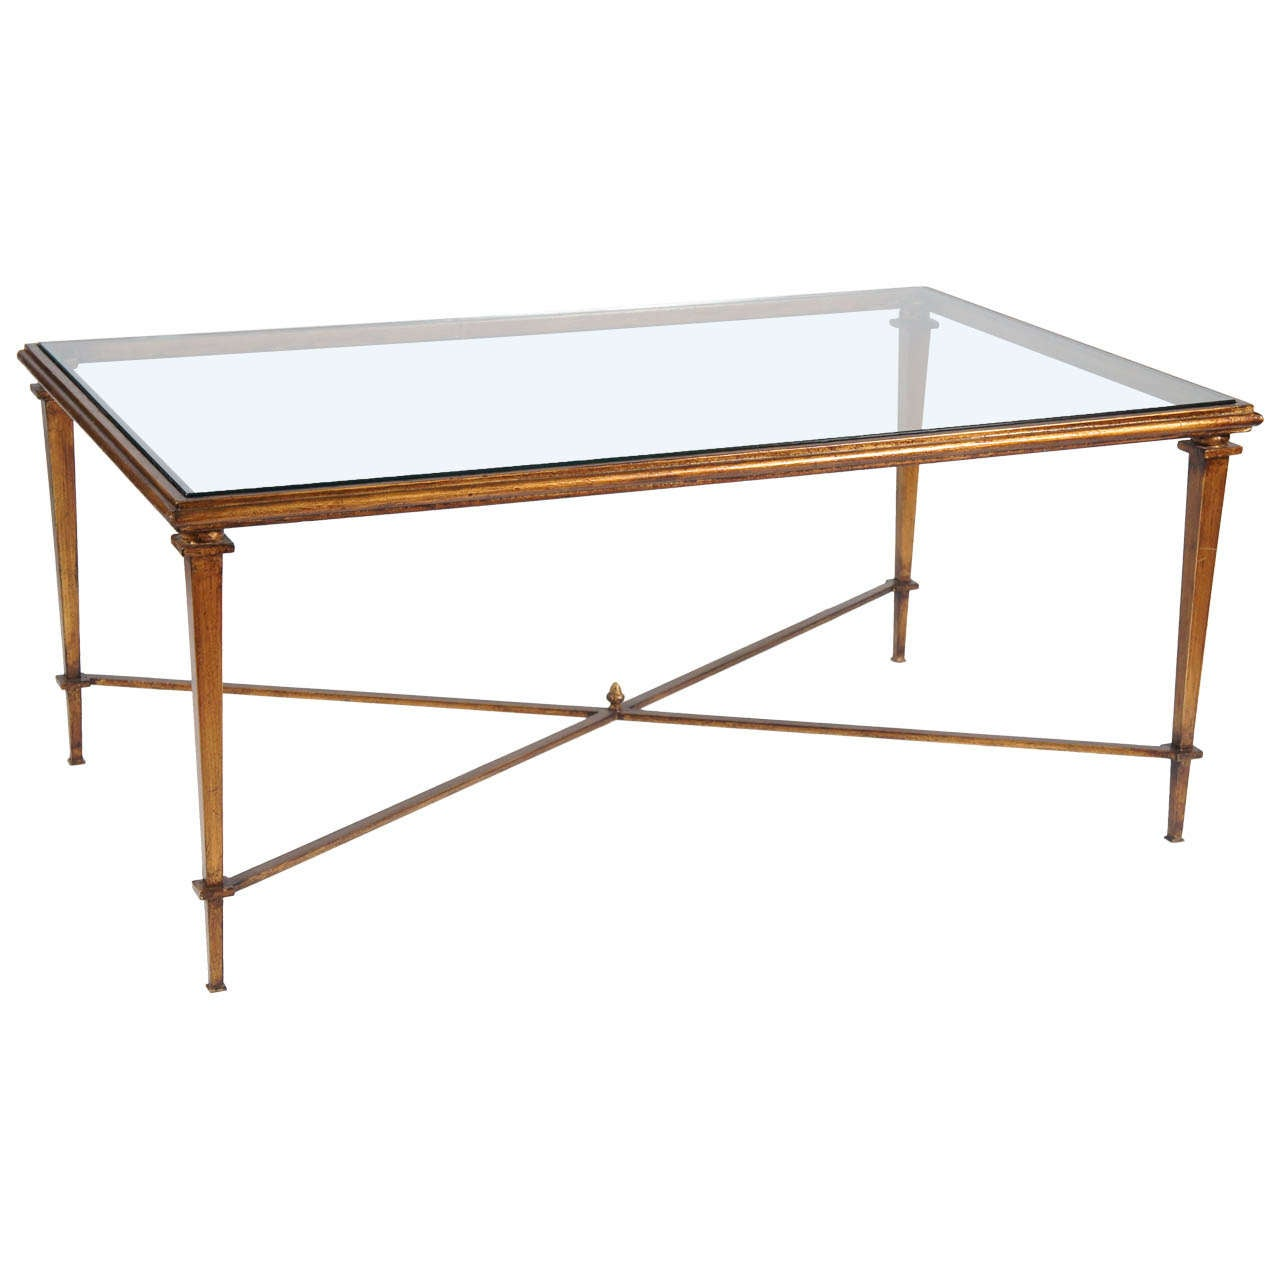 Neoclassical Style Metal Coffee Table With Glass Top